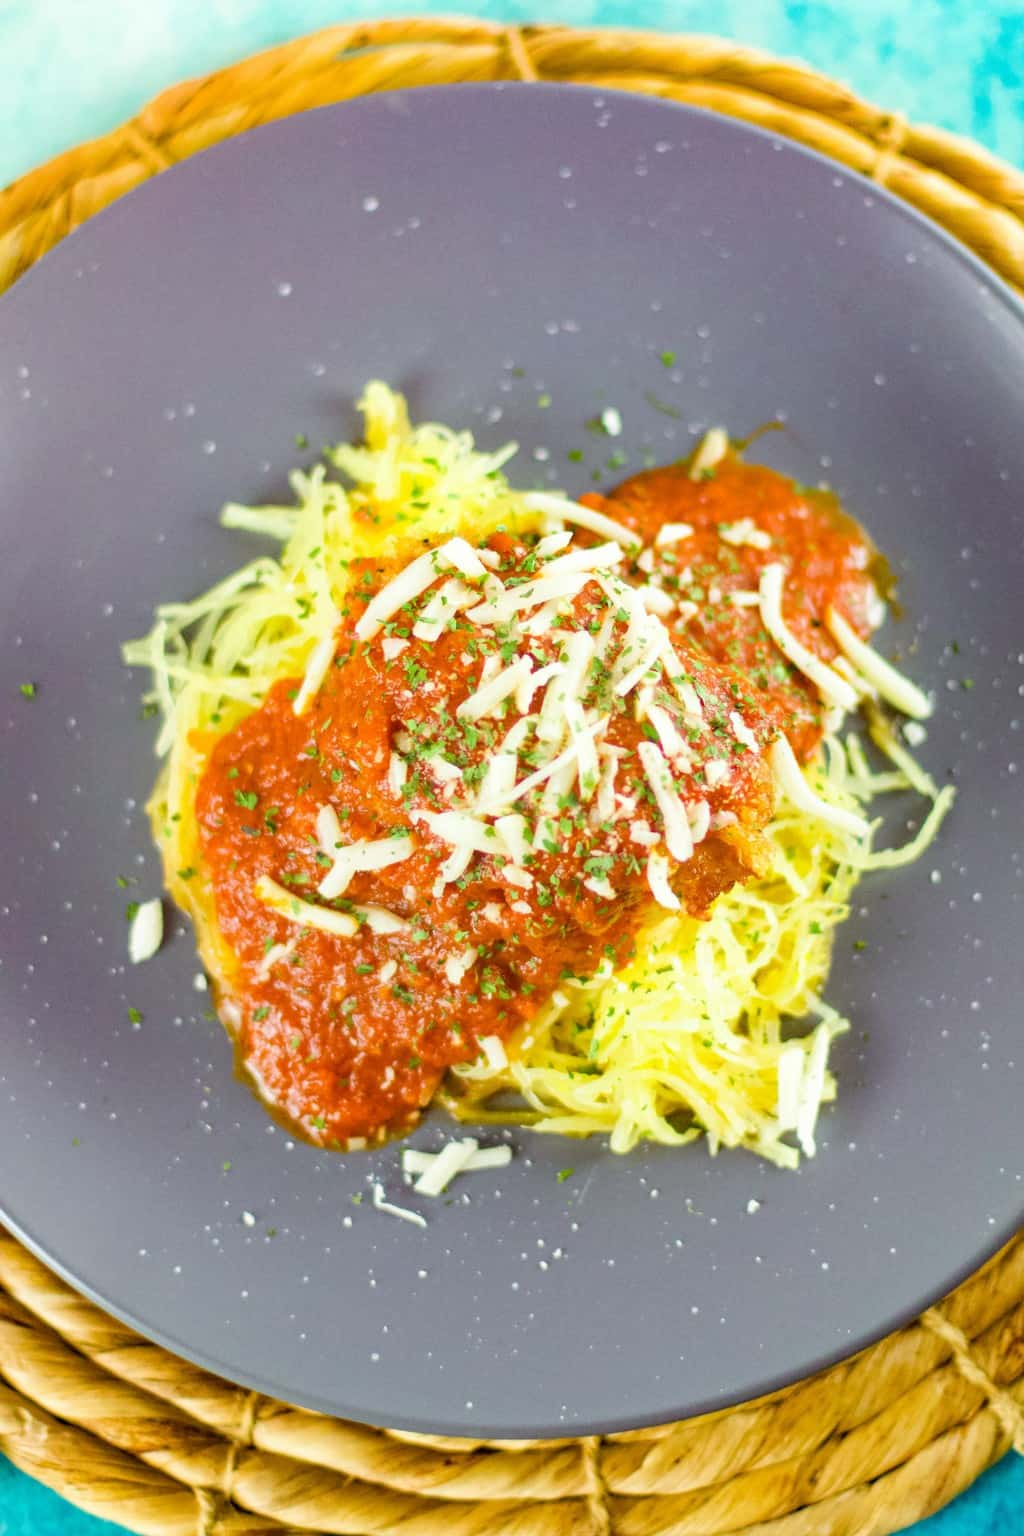 Low-Carb Air Fryer Chicken Parmesan